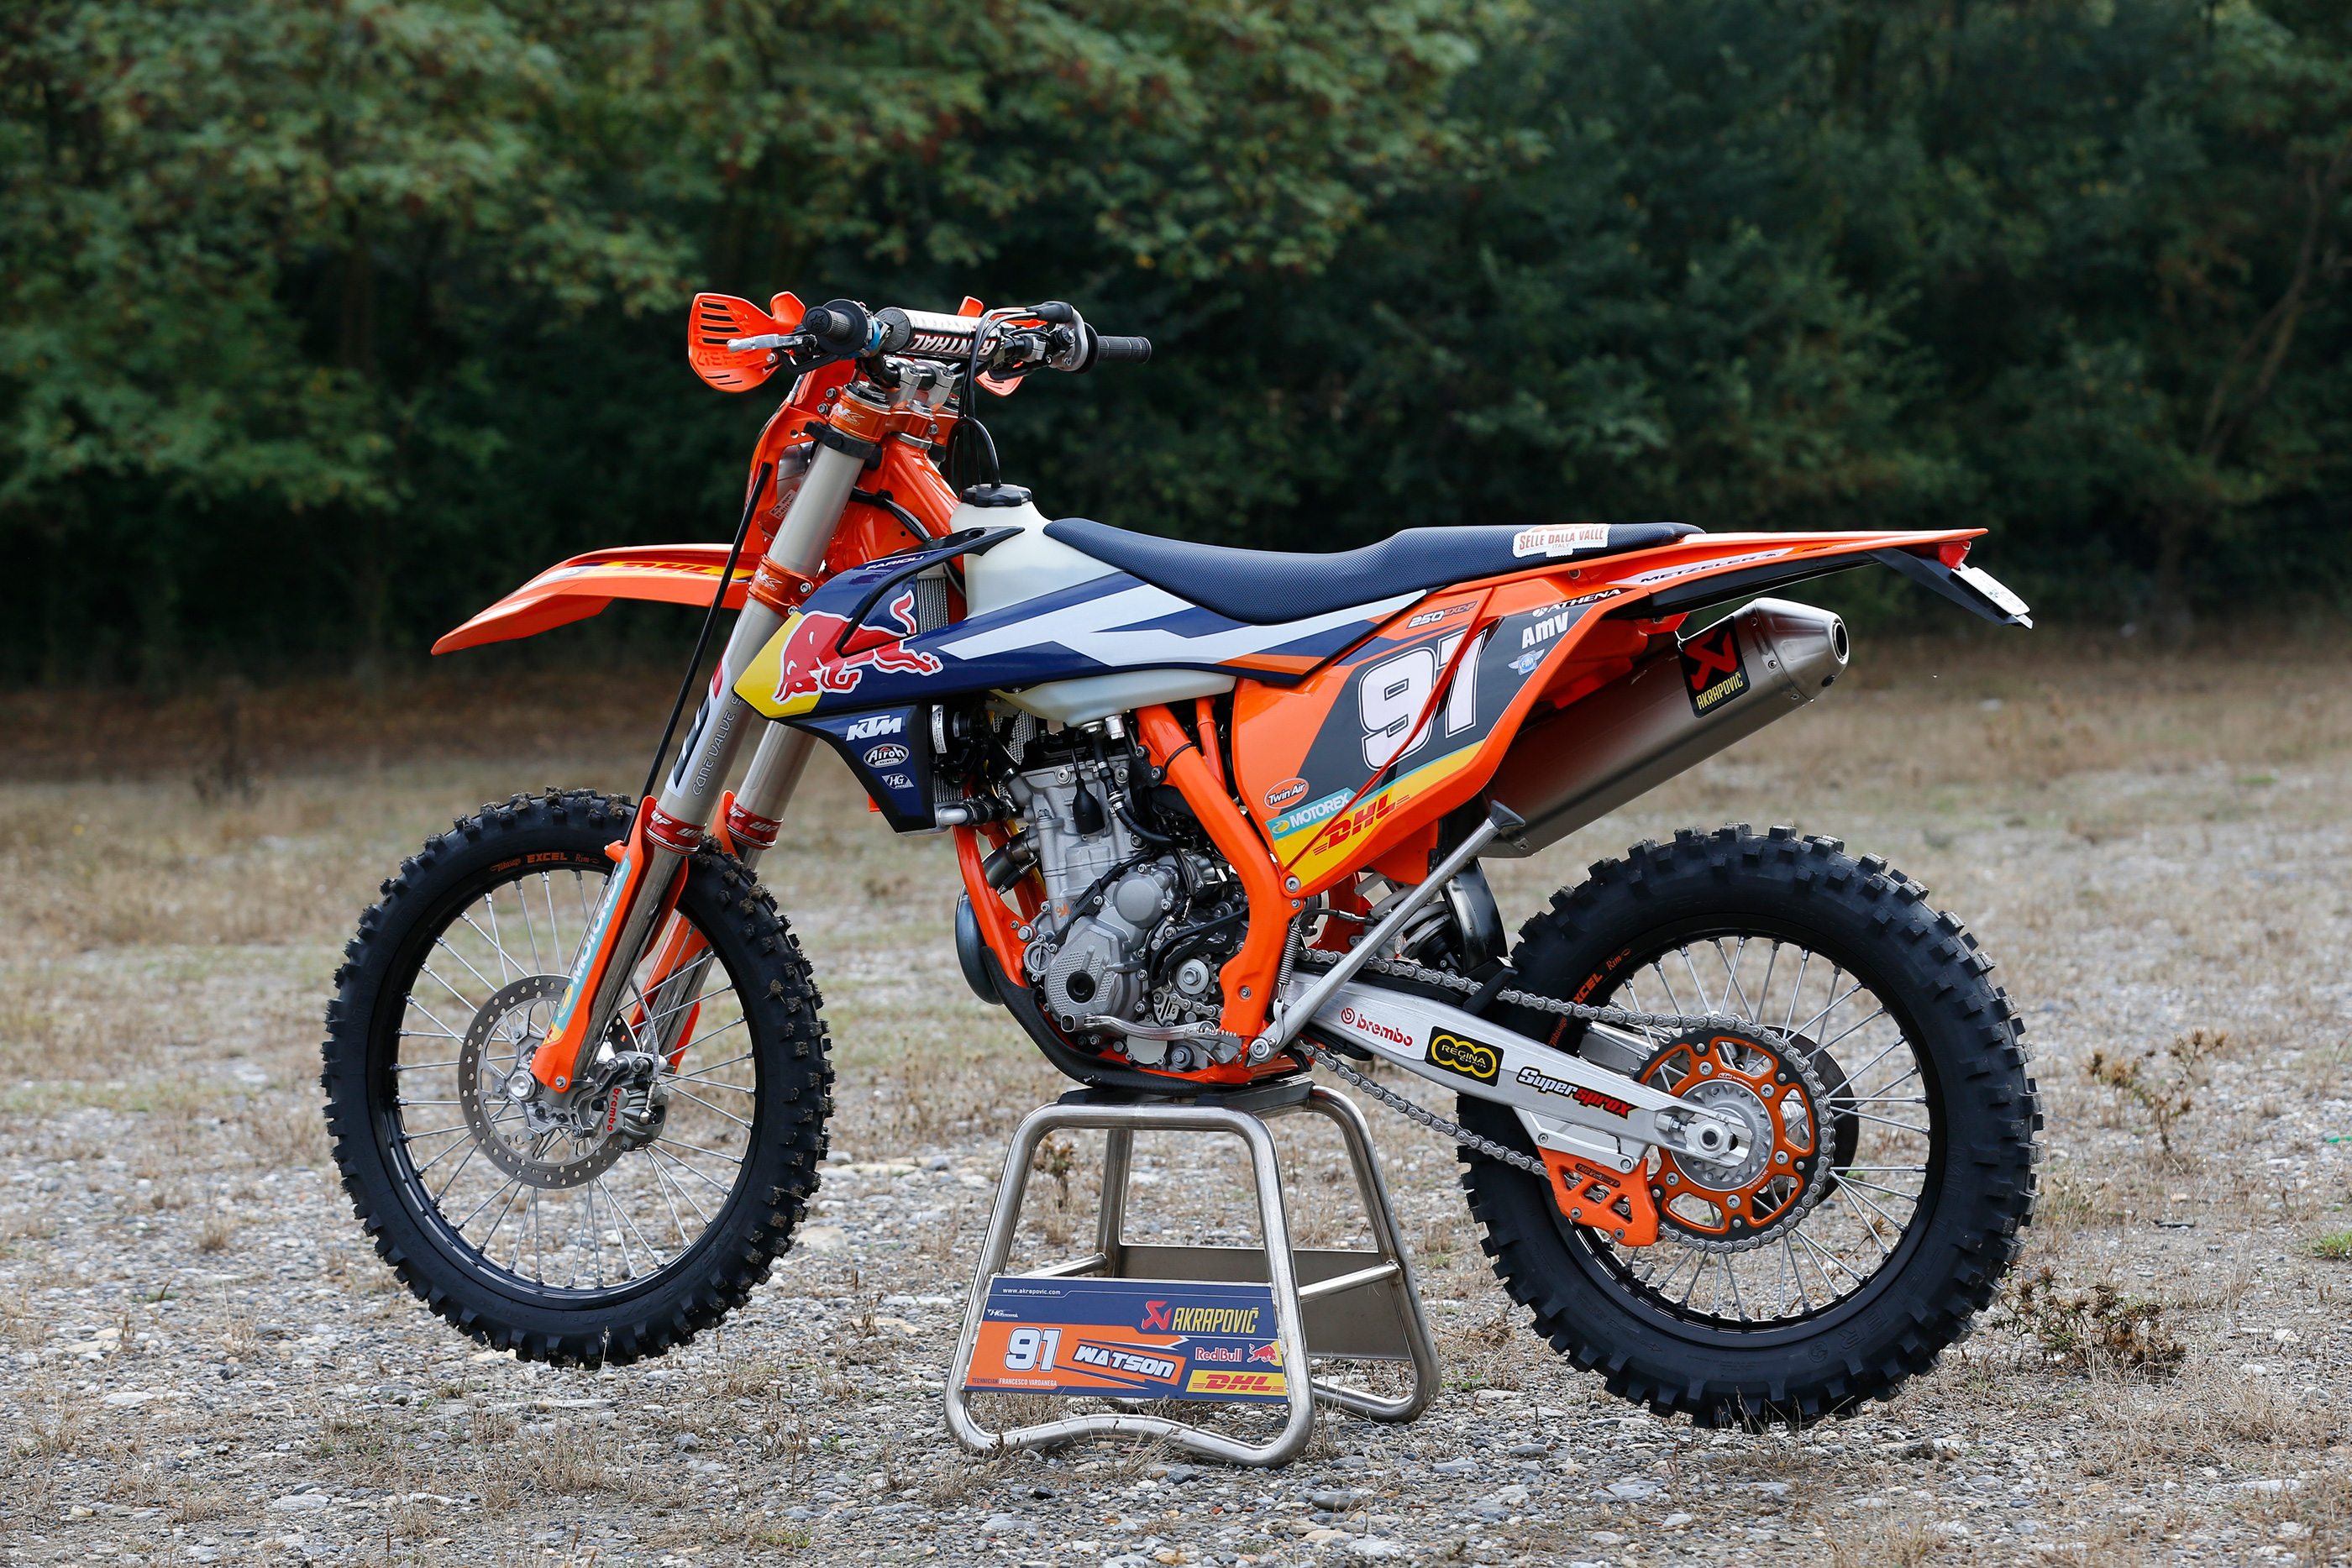 nathan watson s ktm 250 exc 2017 factory bike de ride review derestricted. Black Bedroom Furniture Sets. Home Design Ideas